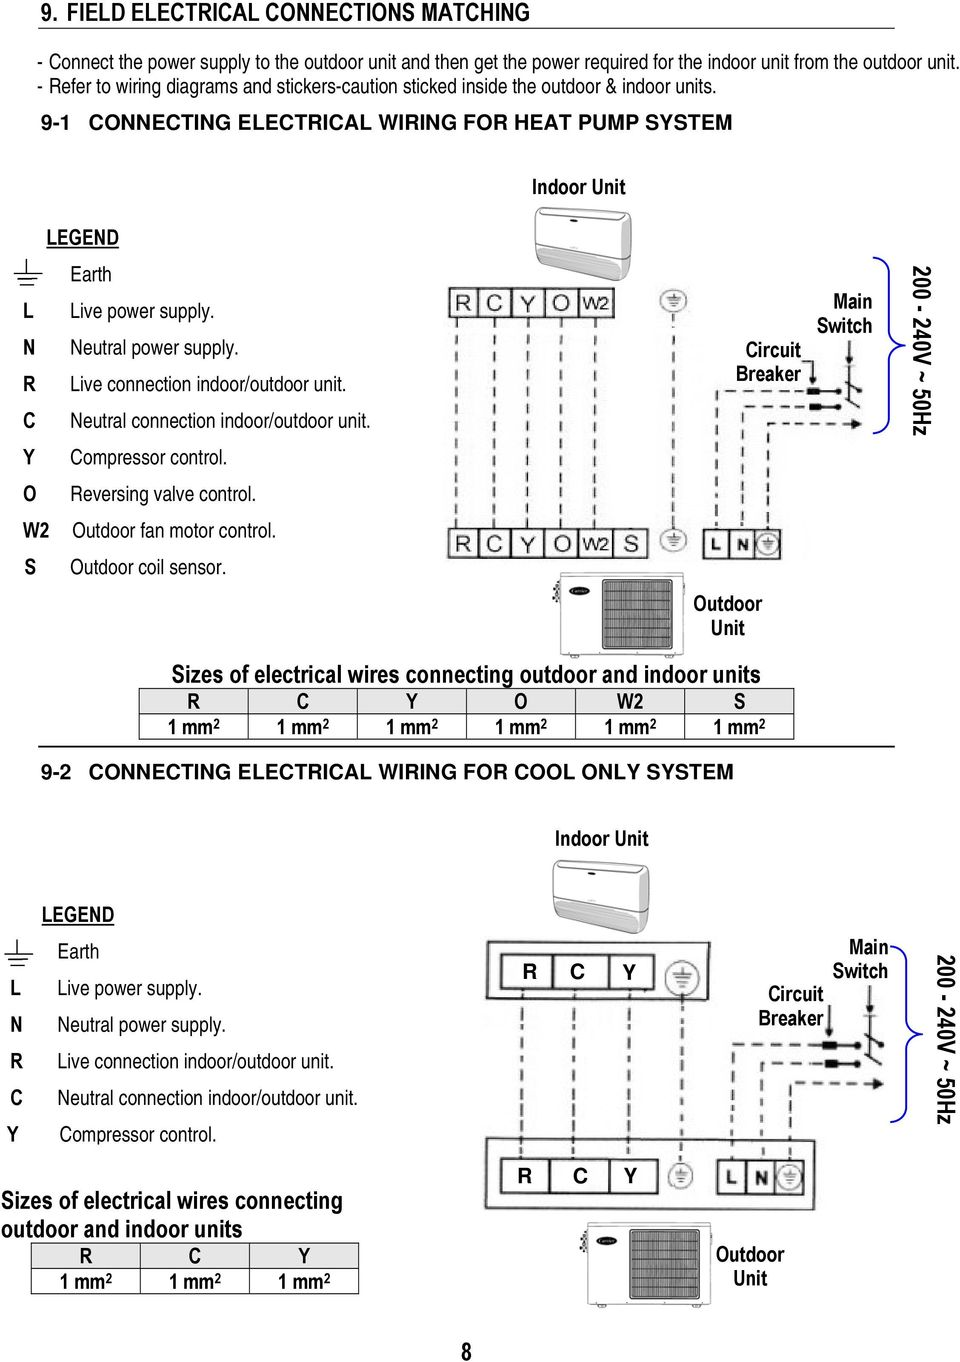 Service Maintenance Manual Pdf Outdoor Unit Wiring Diagrams Live Connection Indoor Neutral